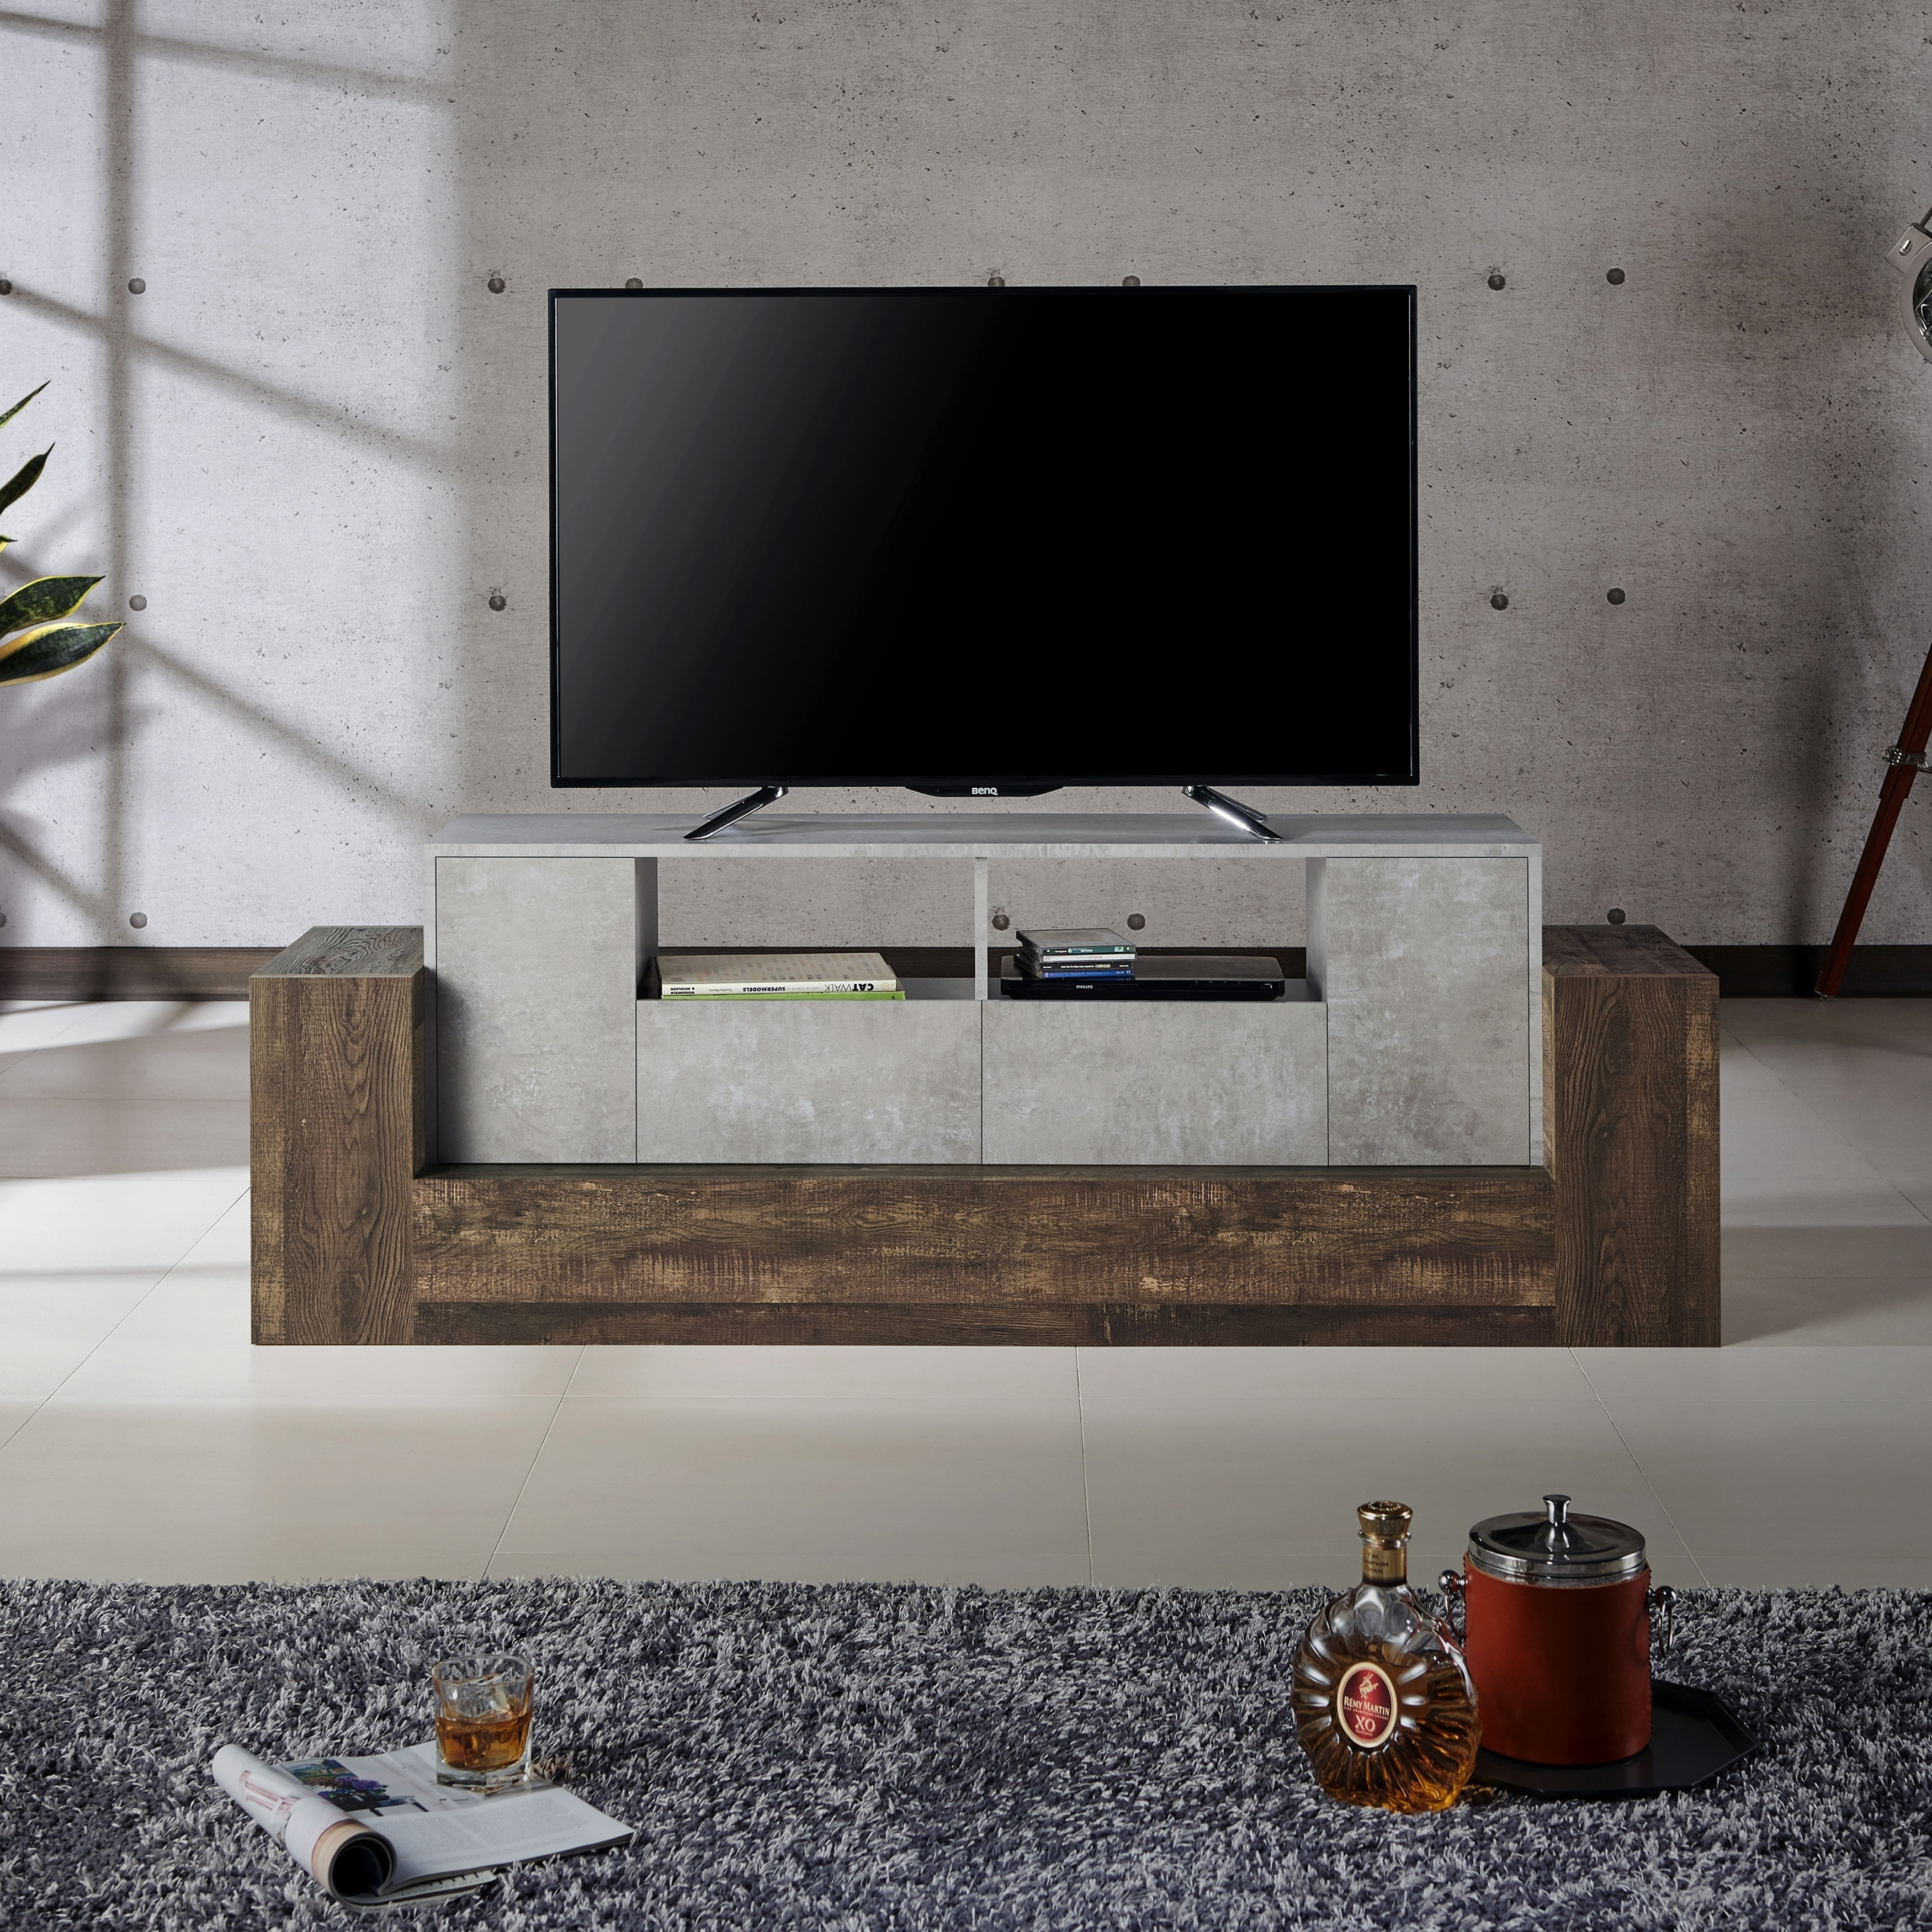 Diy Small Entertainment Center Buy 32 42 Inches Tv Stands Entertainment Centers Online At